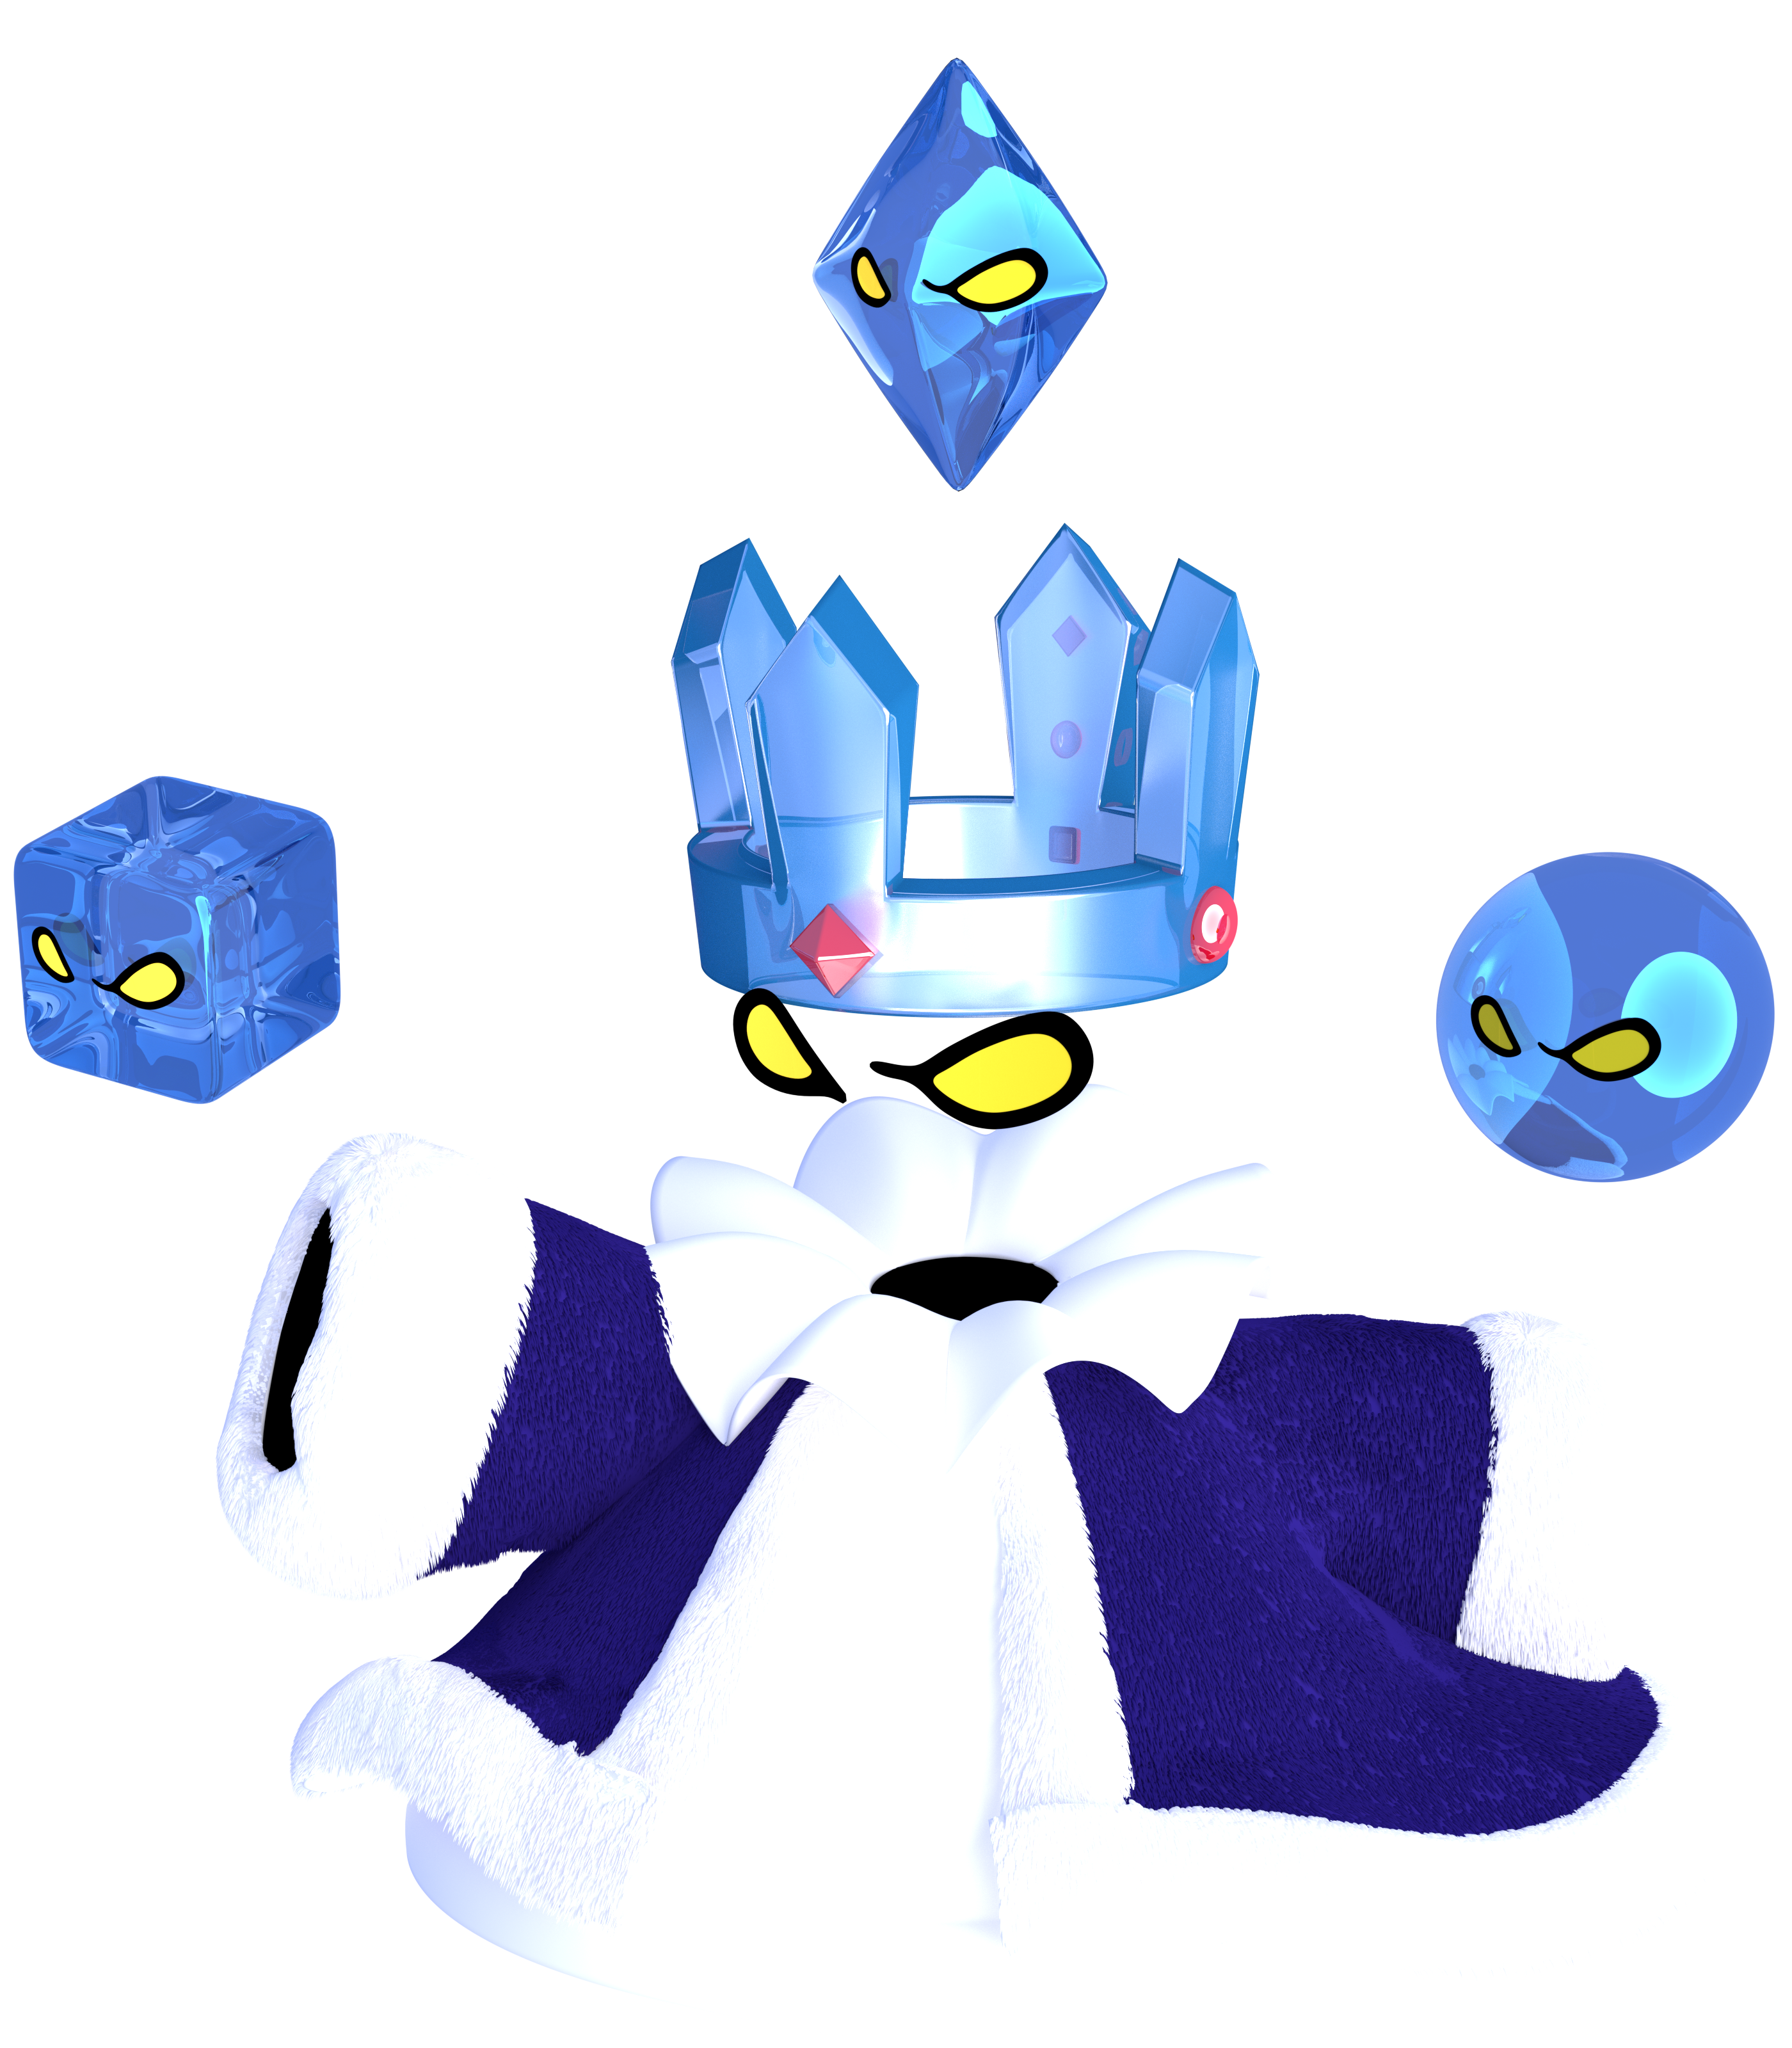 BEHOLD THE CRYSTAL KING! SPIRIT OF ICE!